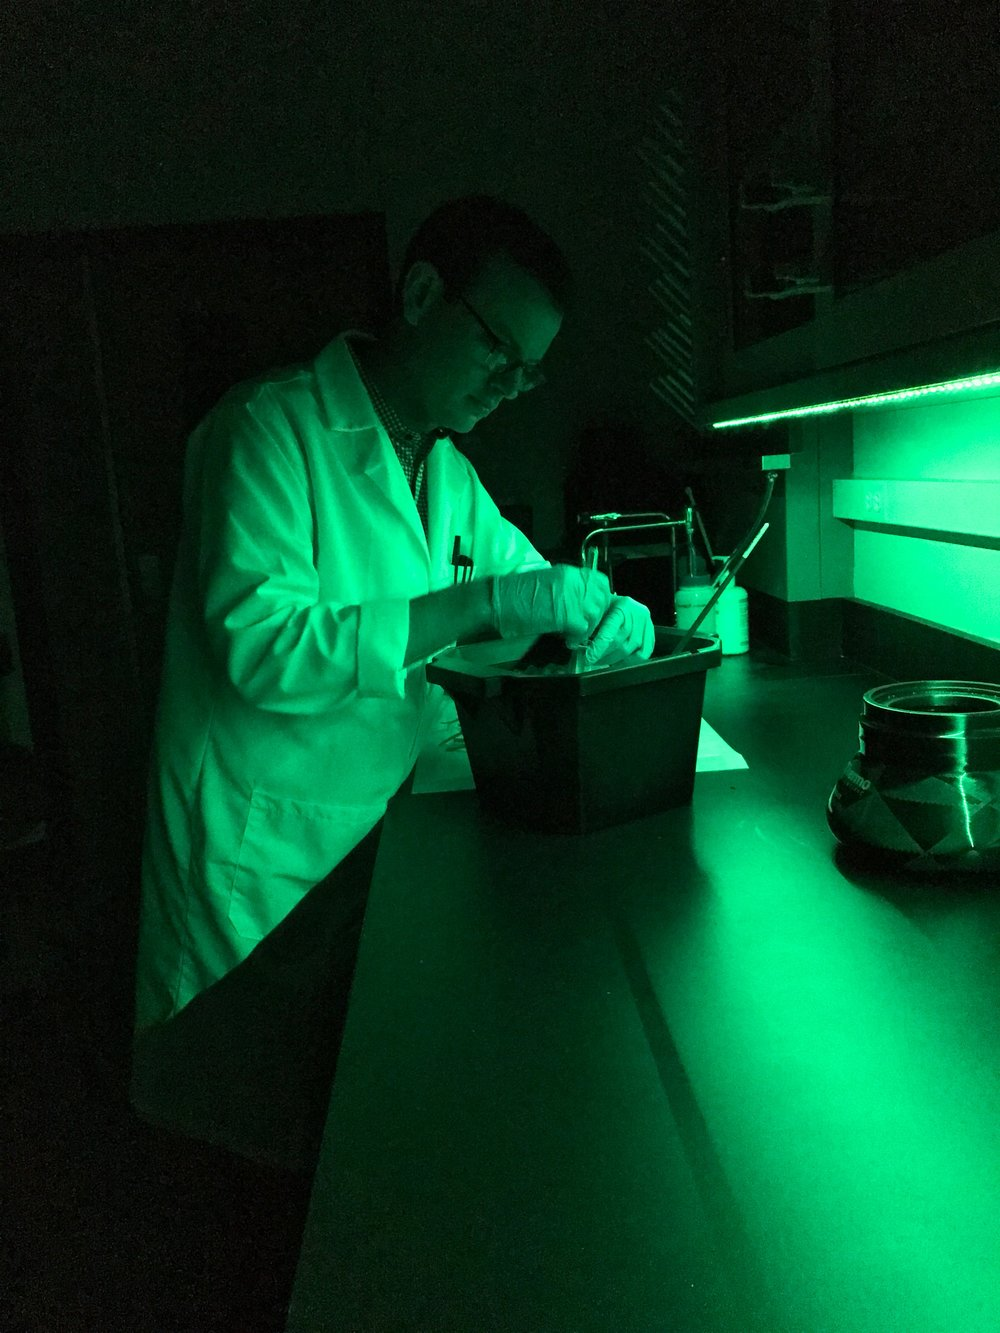 David Vinyard working in his photosynthesis lab - where working in the dark is doing good science! Credit: David Vinyard.